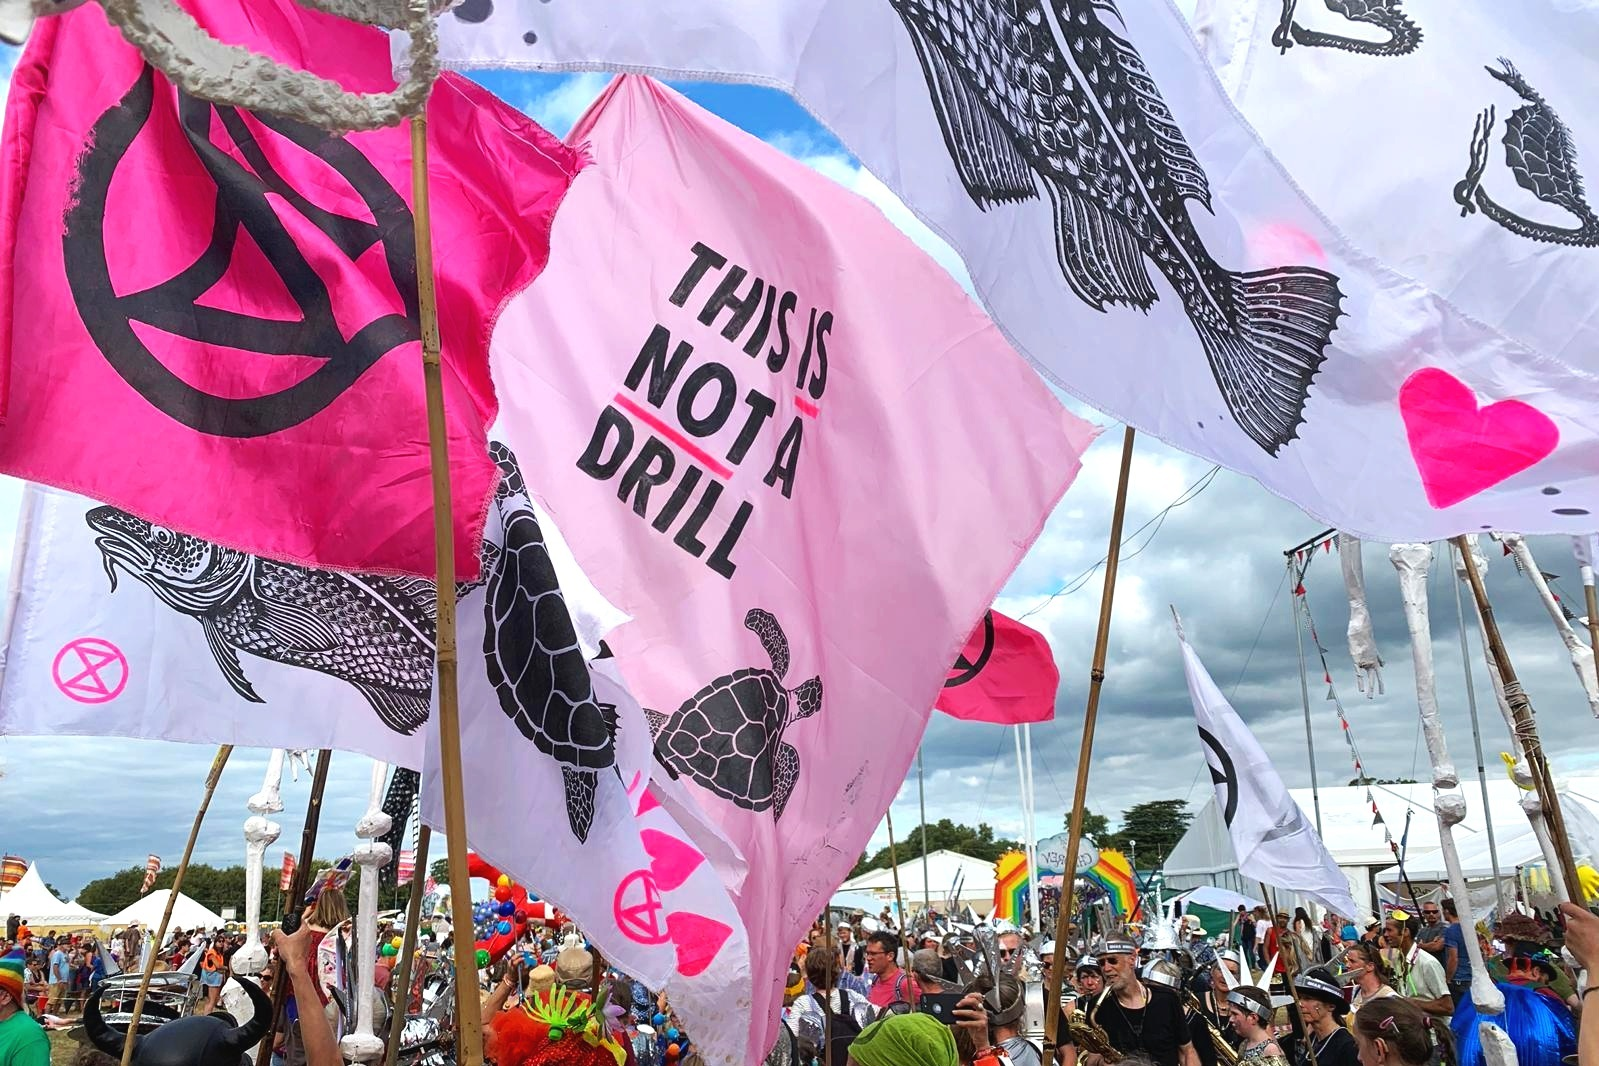 EXTINCTION REBELLION REBEL REBEL STAGE -